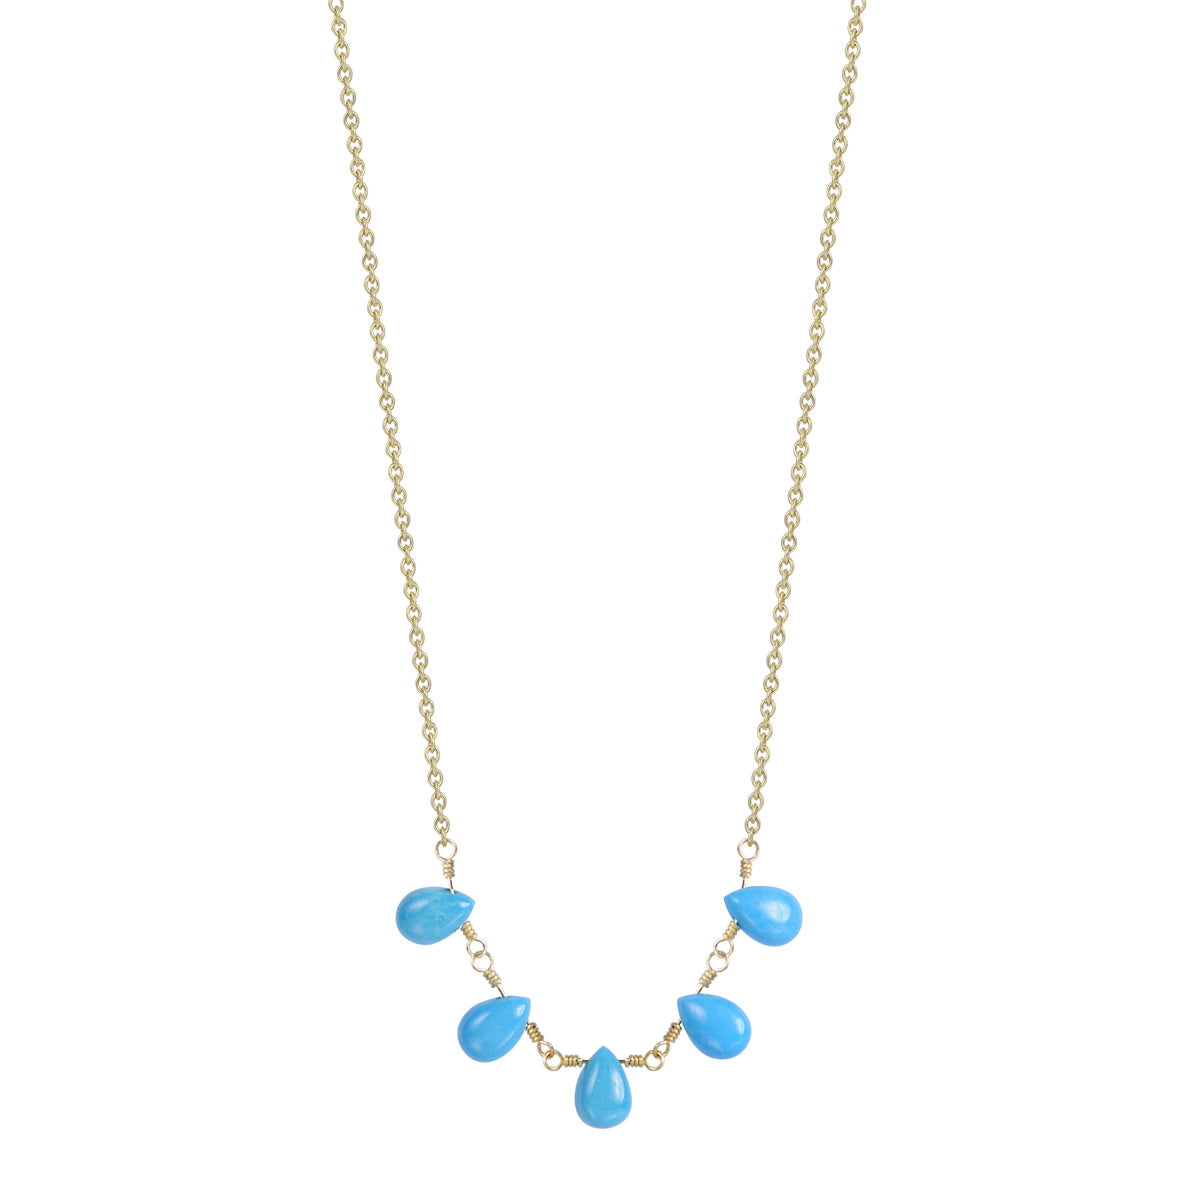 18K Gold 5 Turquoise Teardrops on Chain